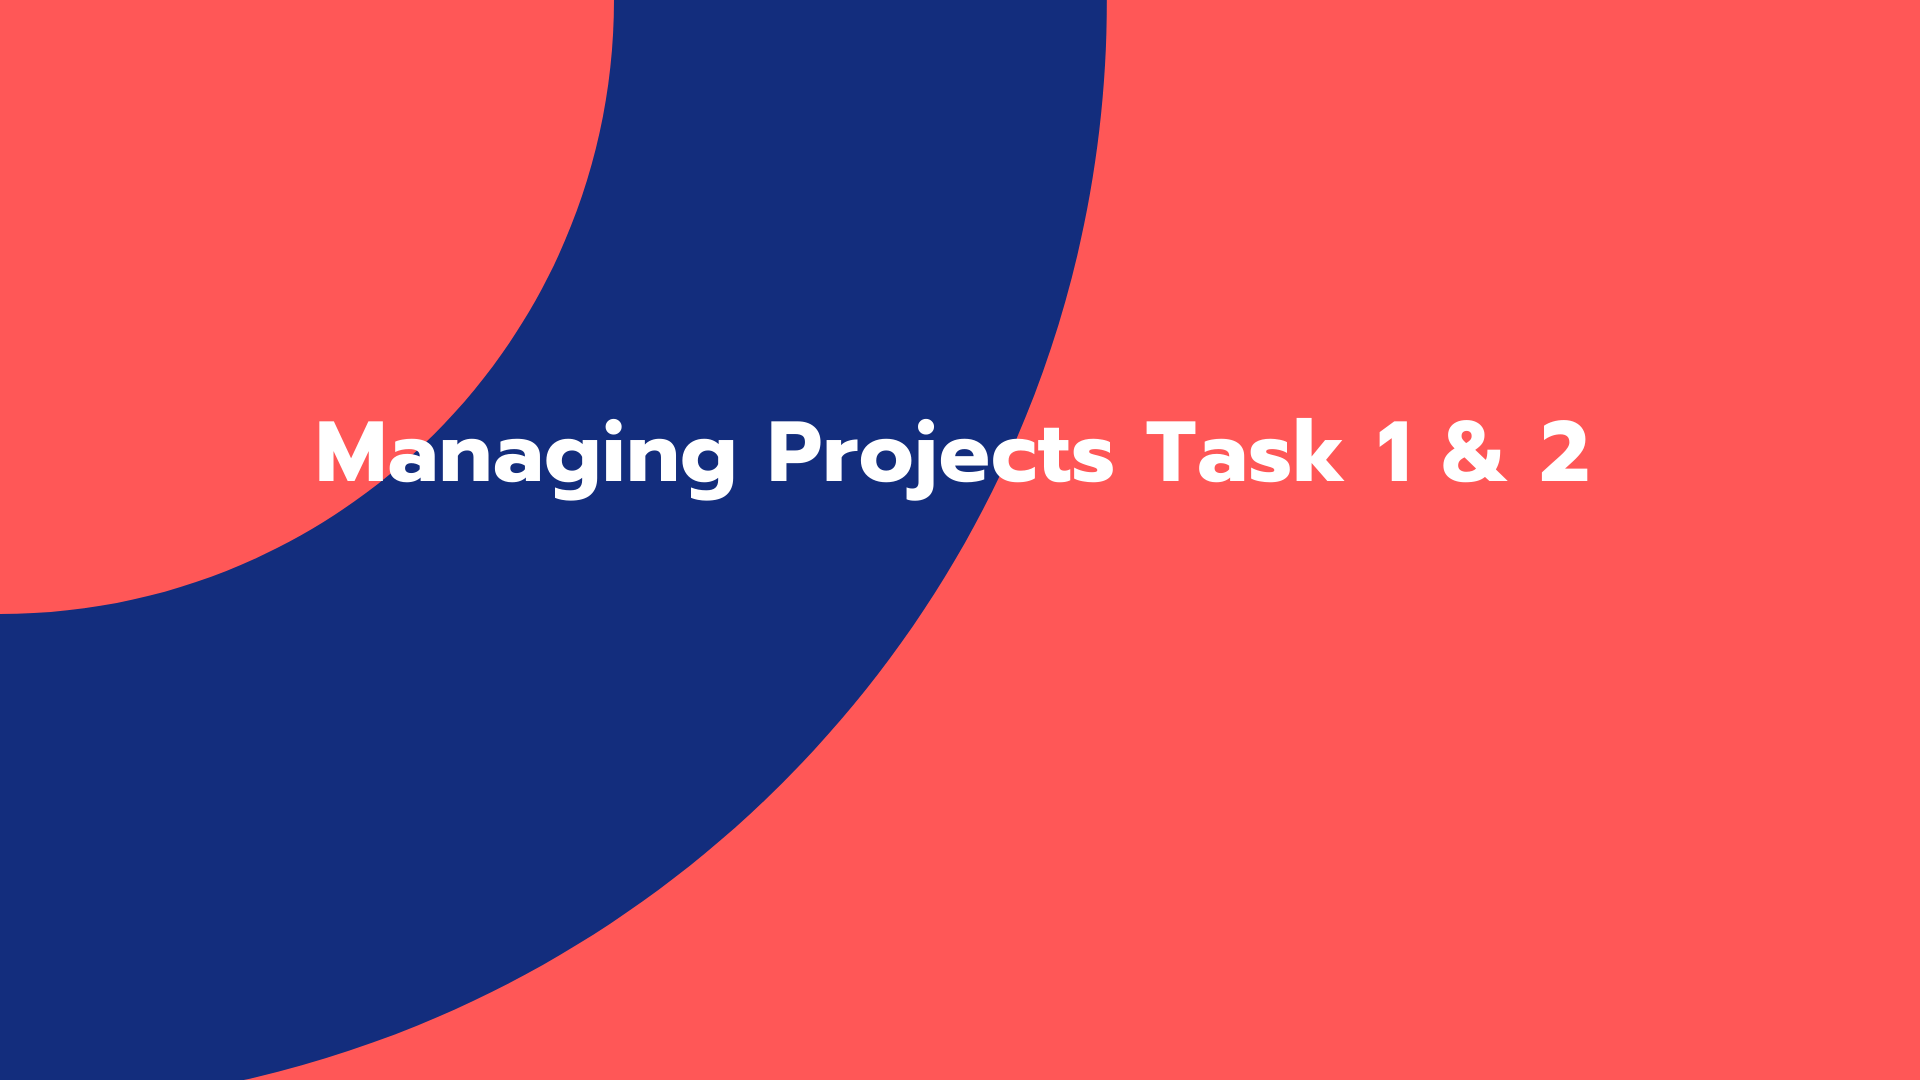 Managing Projects Task 1 & 2